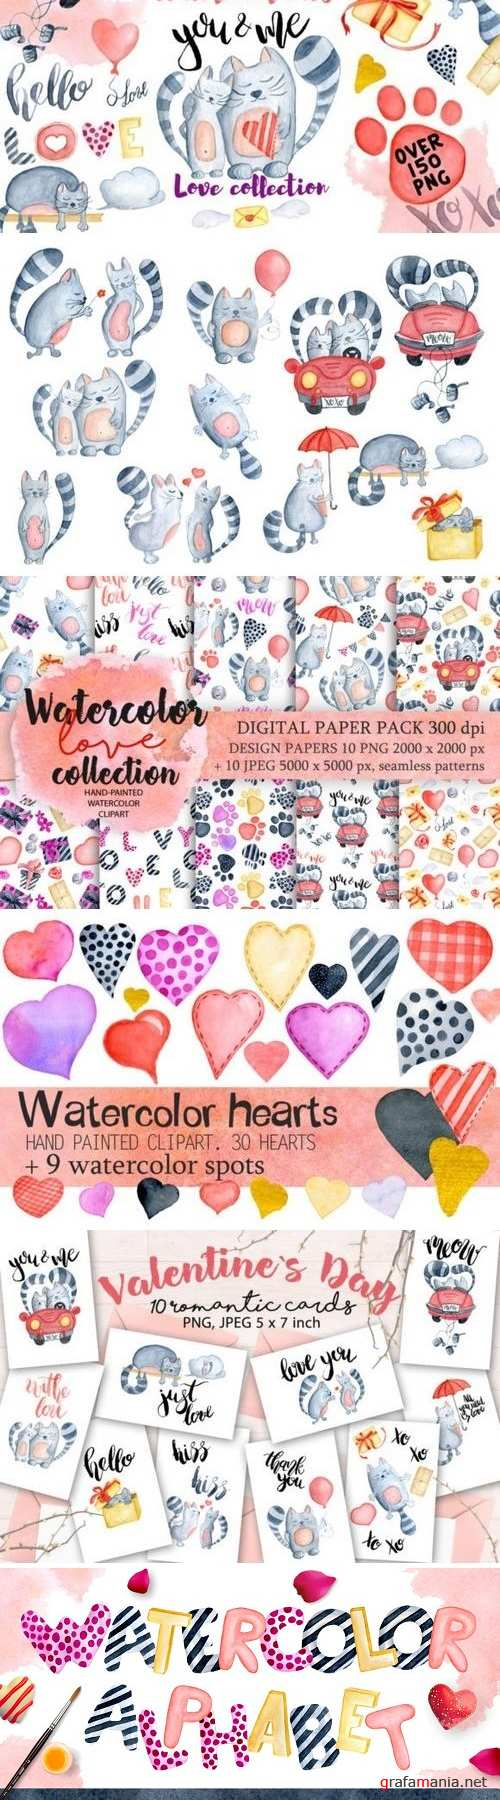 Watercolor Valentines day cats - 1179103